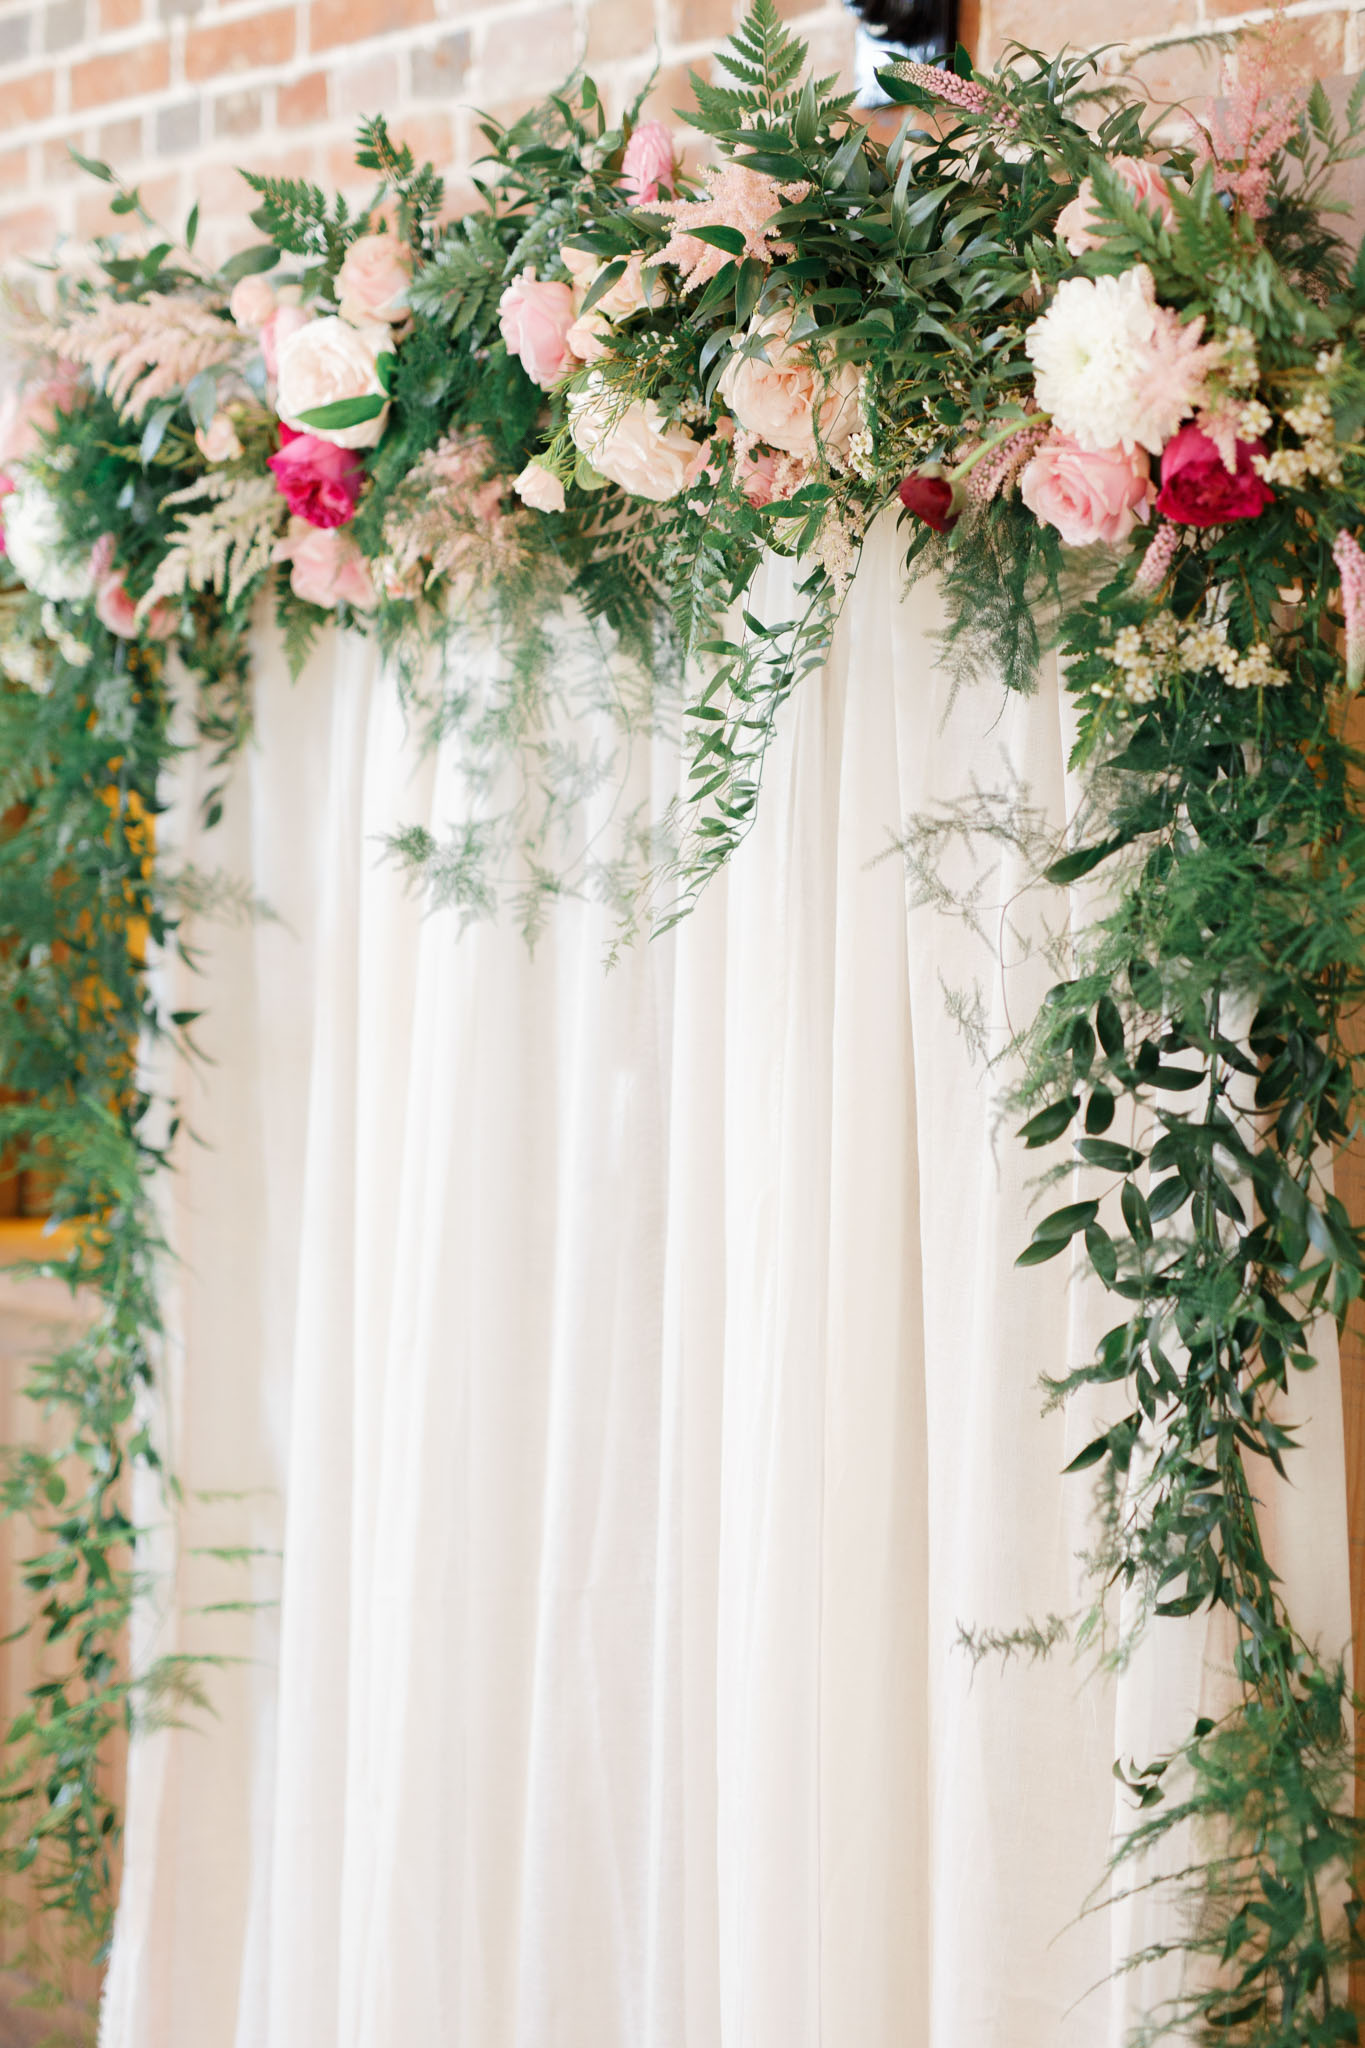 ryan thomas wedding arch with flowers